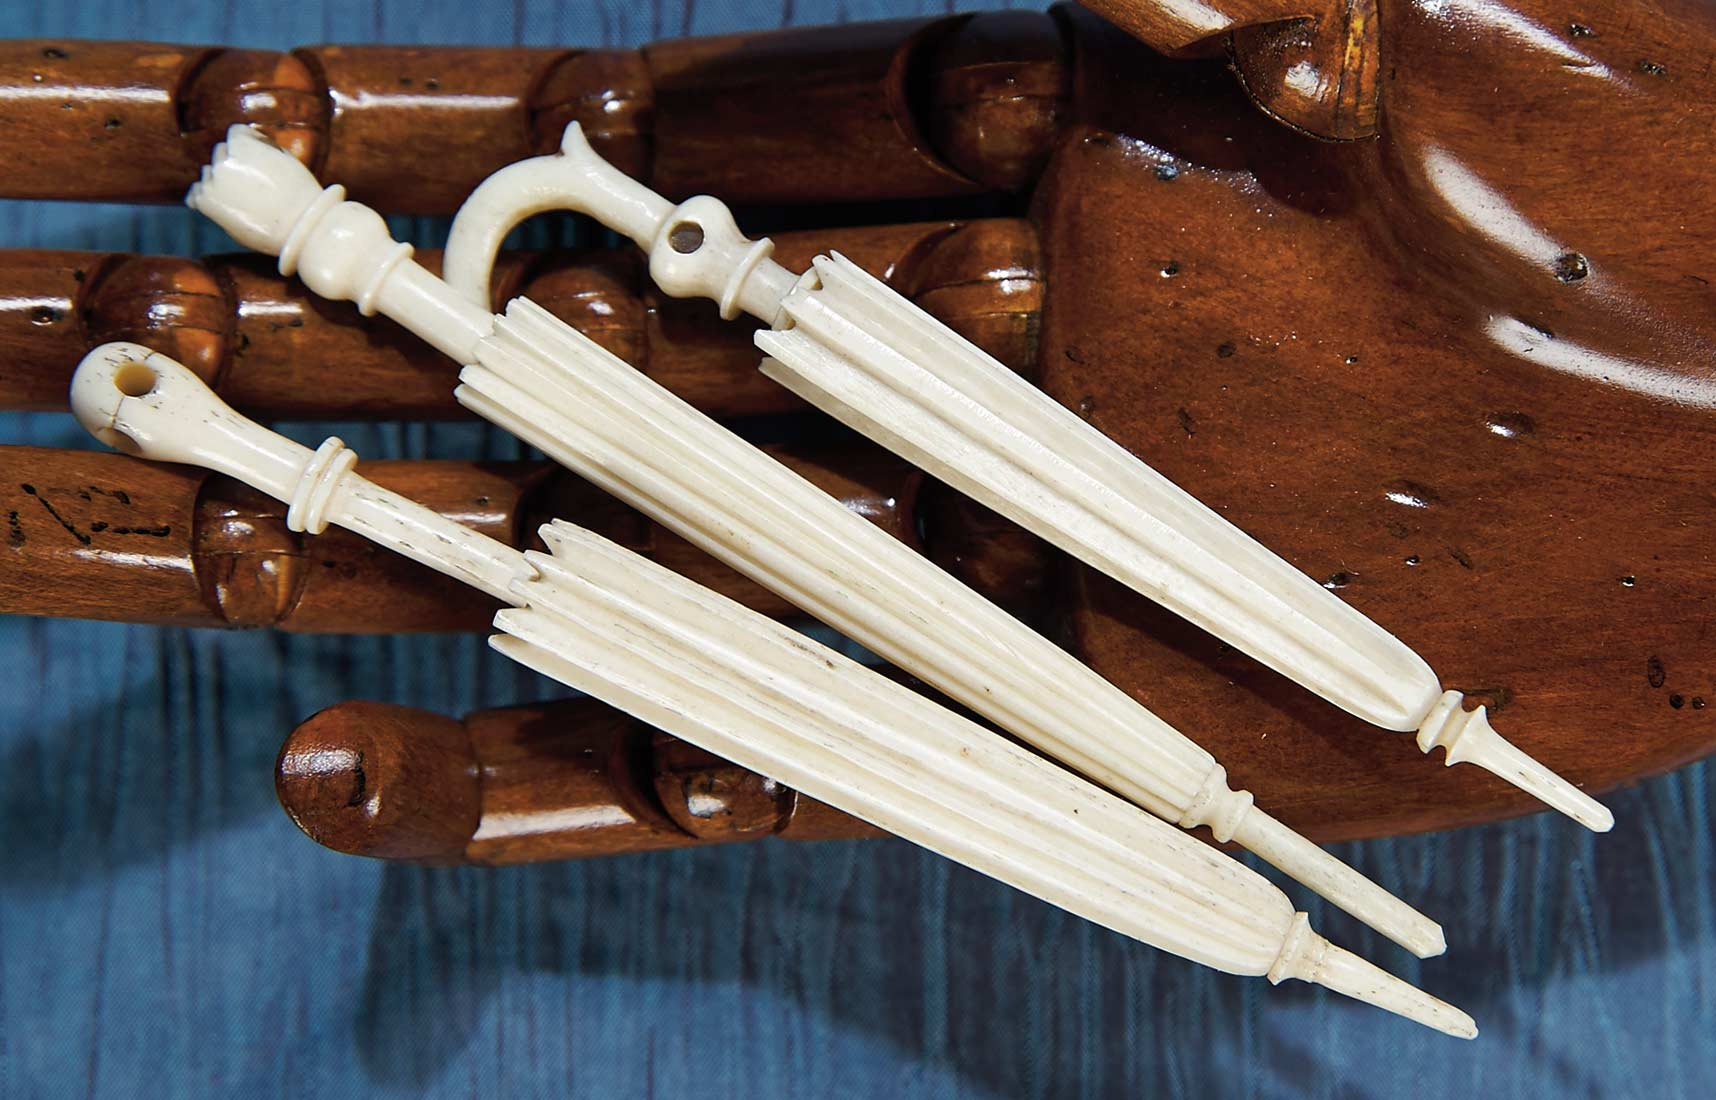 Antique Needlework Tools And Sewing 98 Three French Carved Bone Parasols As Needle Cases